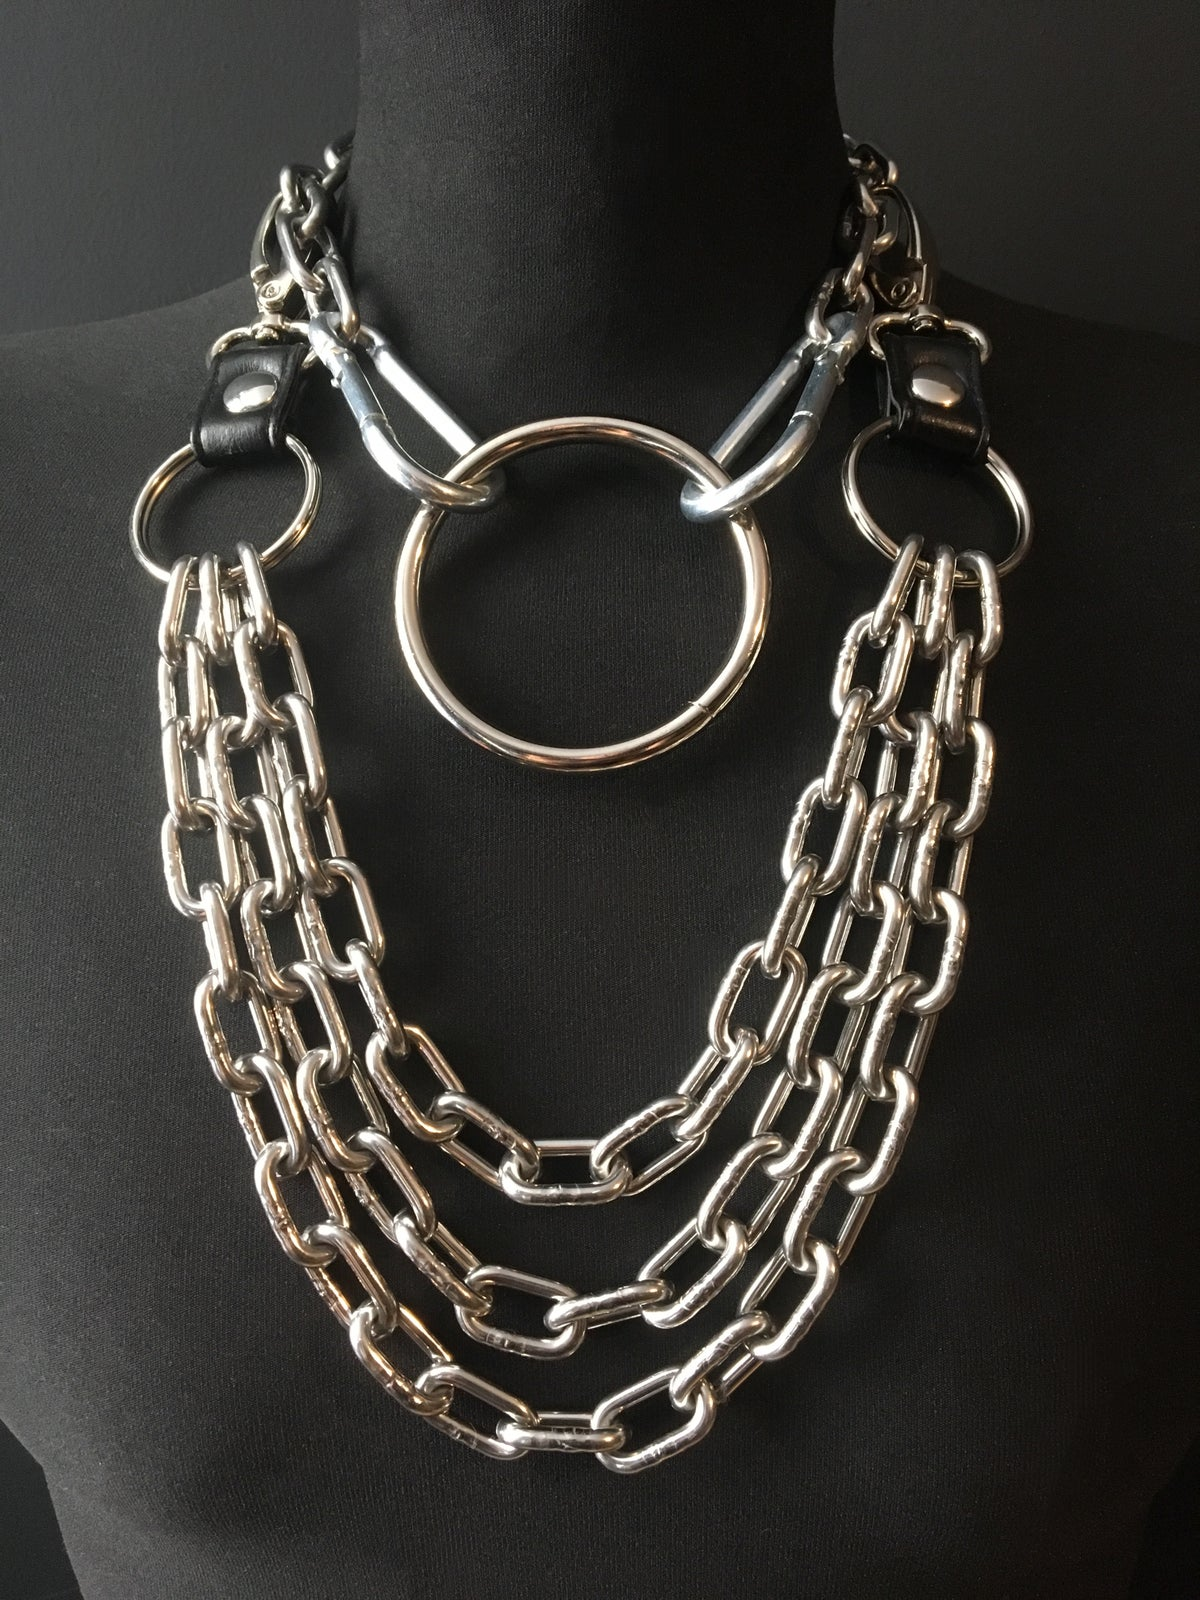 O ring necklace